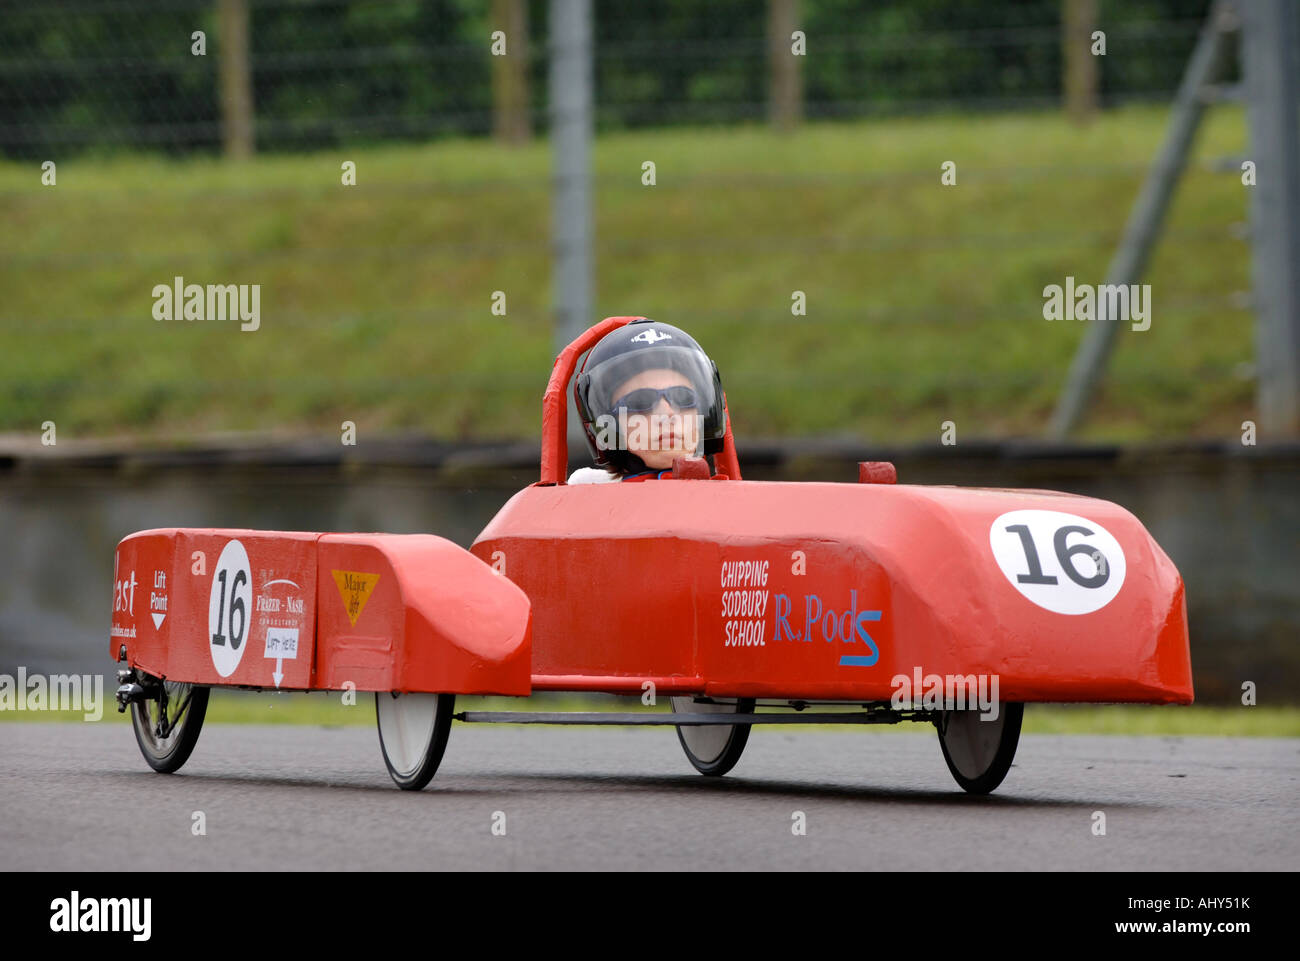 greenpower electric car racing for schools at the castle combe stock photo royalty free image. Black Bedroom Furniture Sets. Home Design Ideas